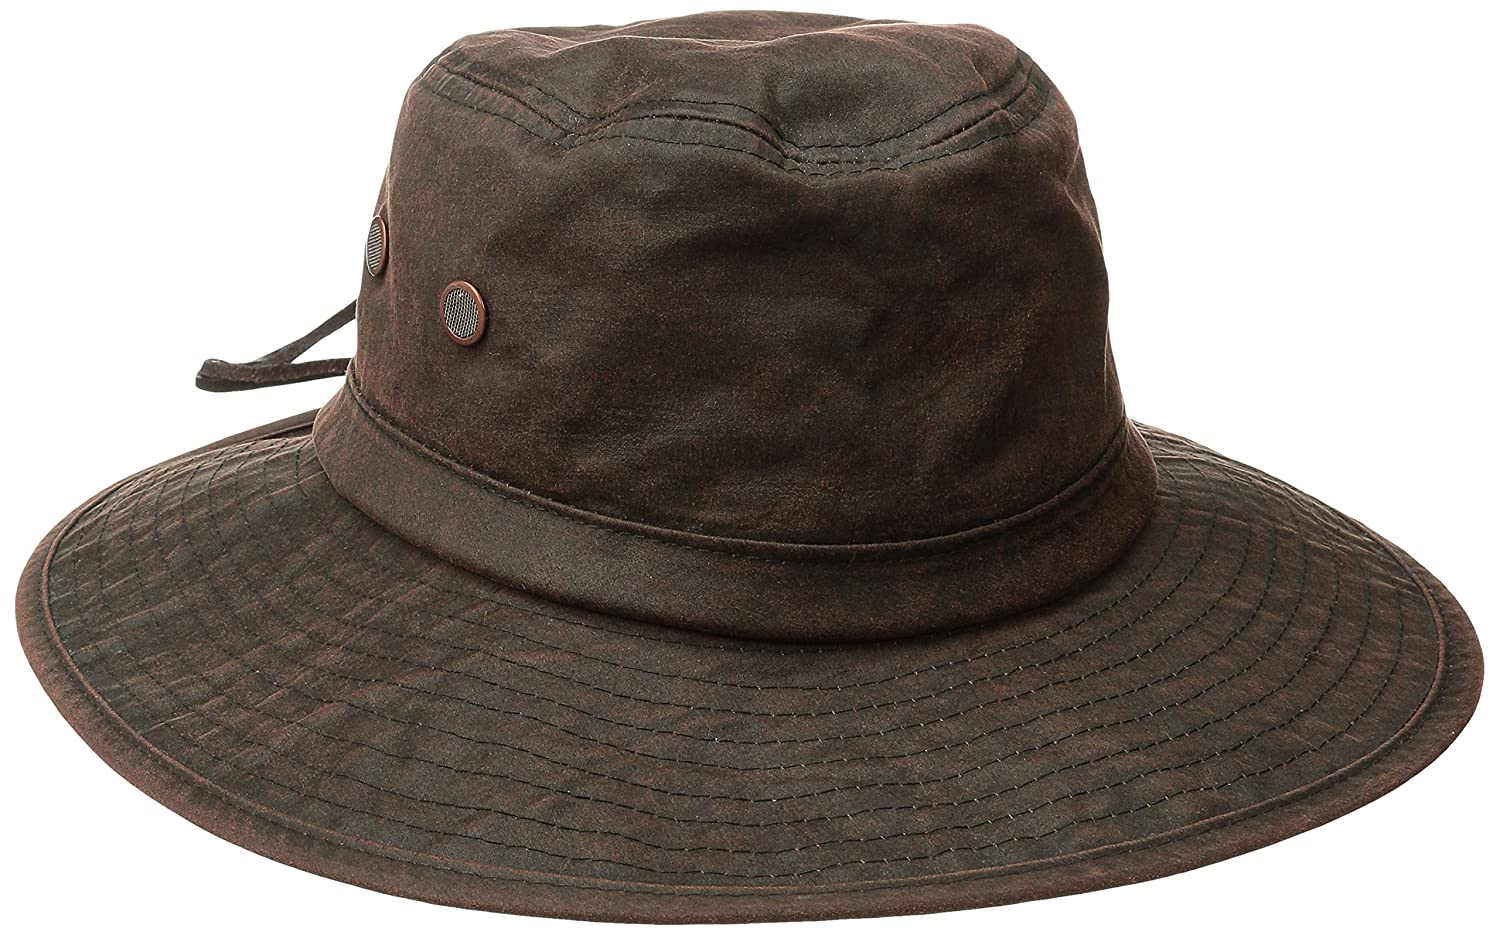 cfc771d0b117d San Diego Hat Co. Men s Distressed Wax Cloth Hat with Adjustable Suede Chin  Cord